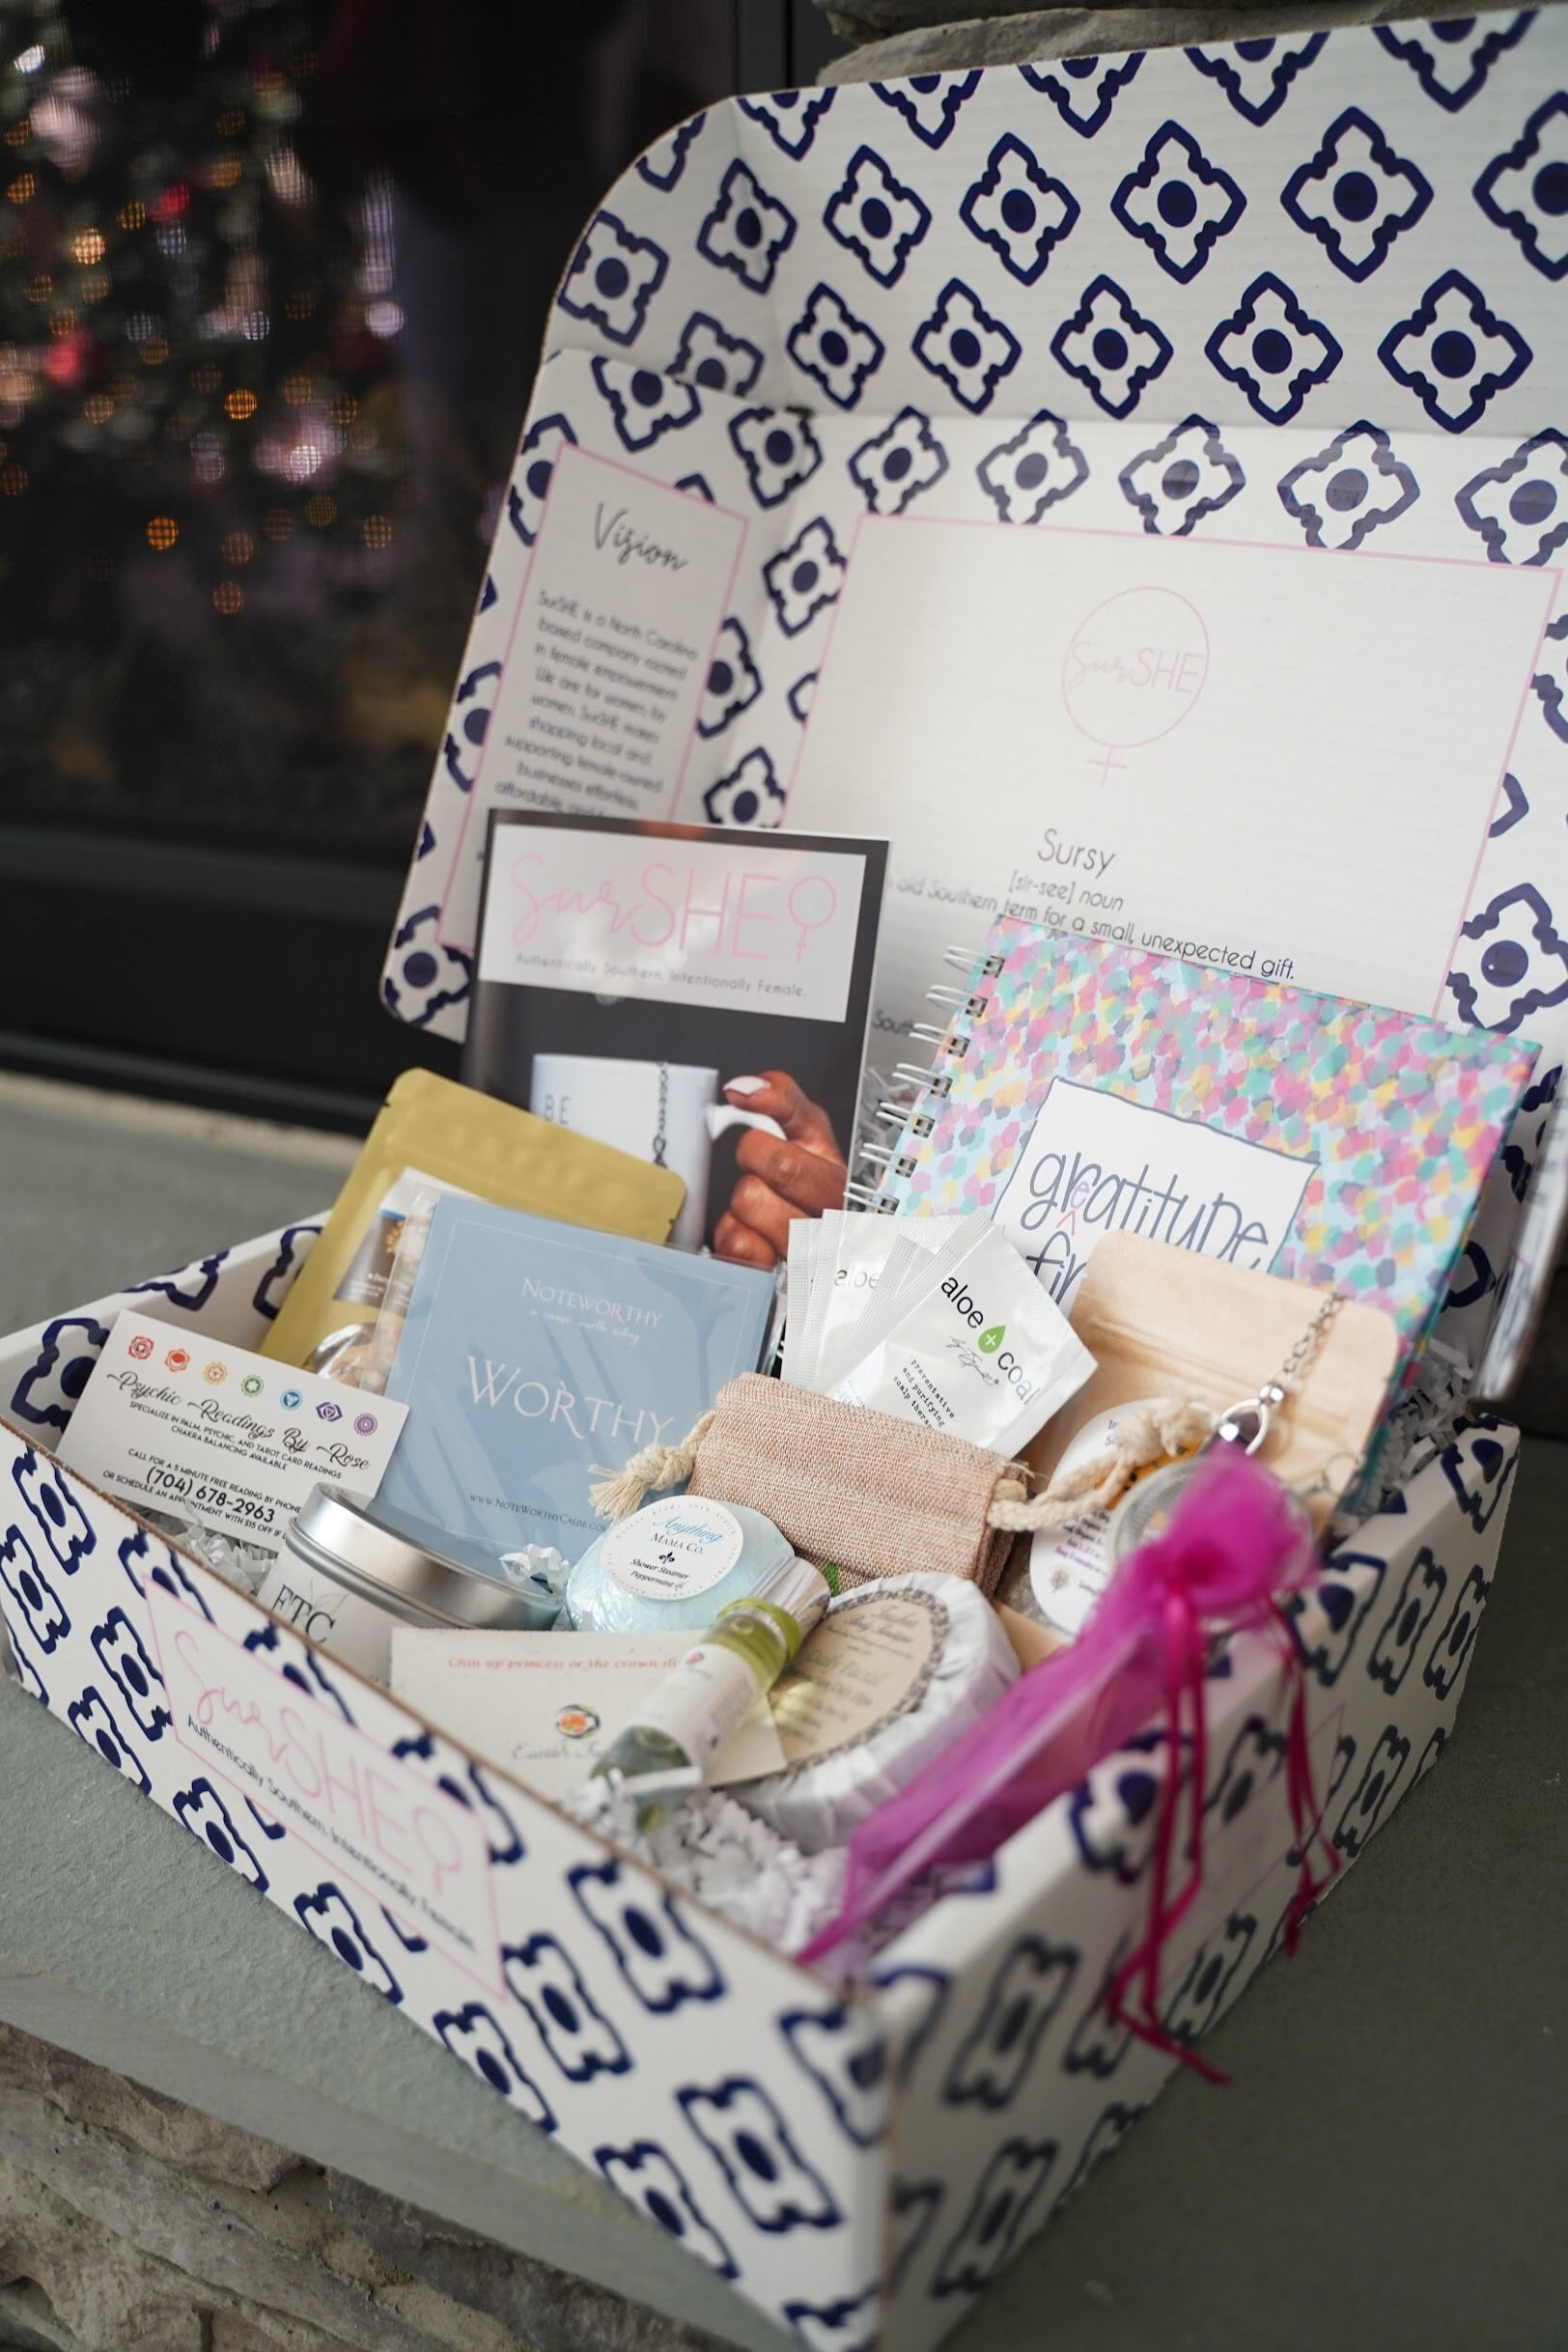 The Goddess Box Surshe. Every Goddess Box is filled with products thoughtfully and ethically made by a female entrepreneur whose vision aligns with ours.